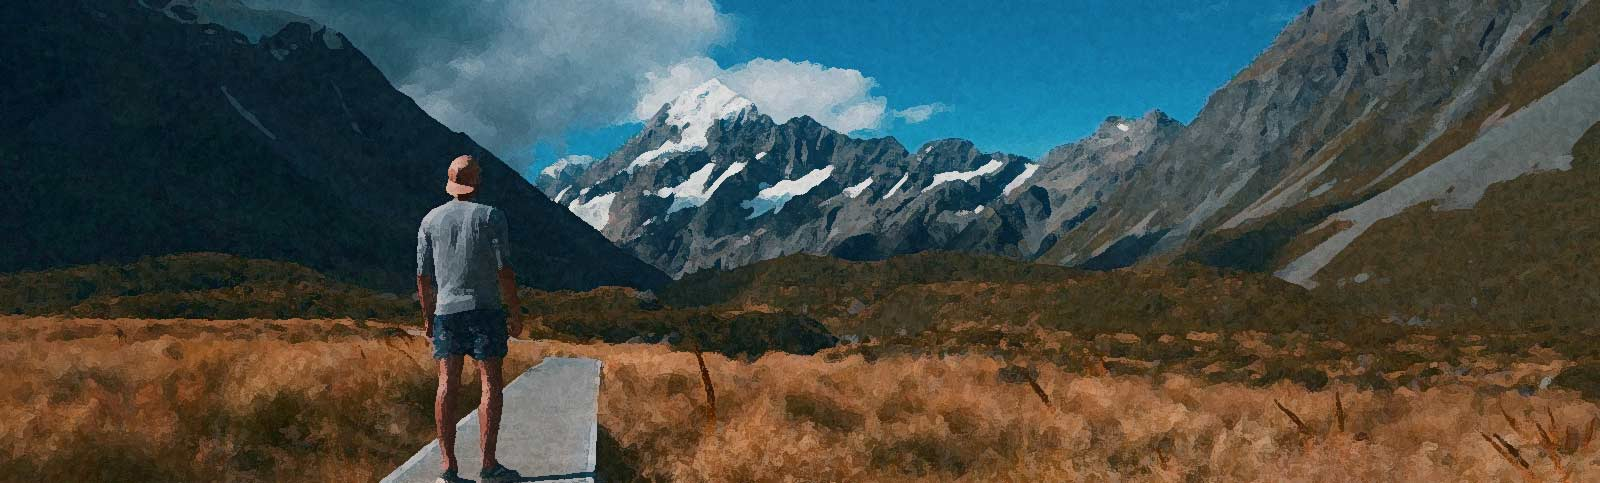 New Zealand is the Trekking Capital of the World